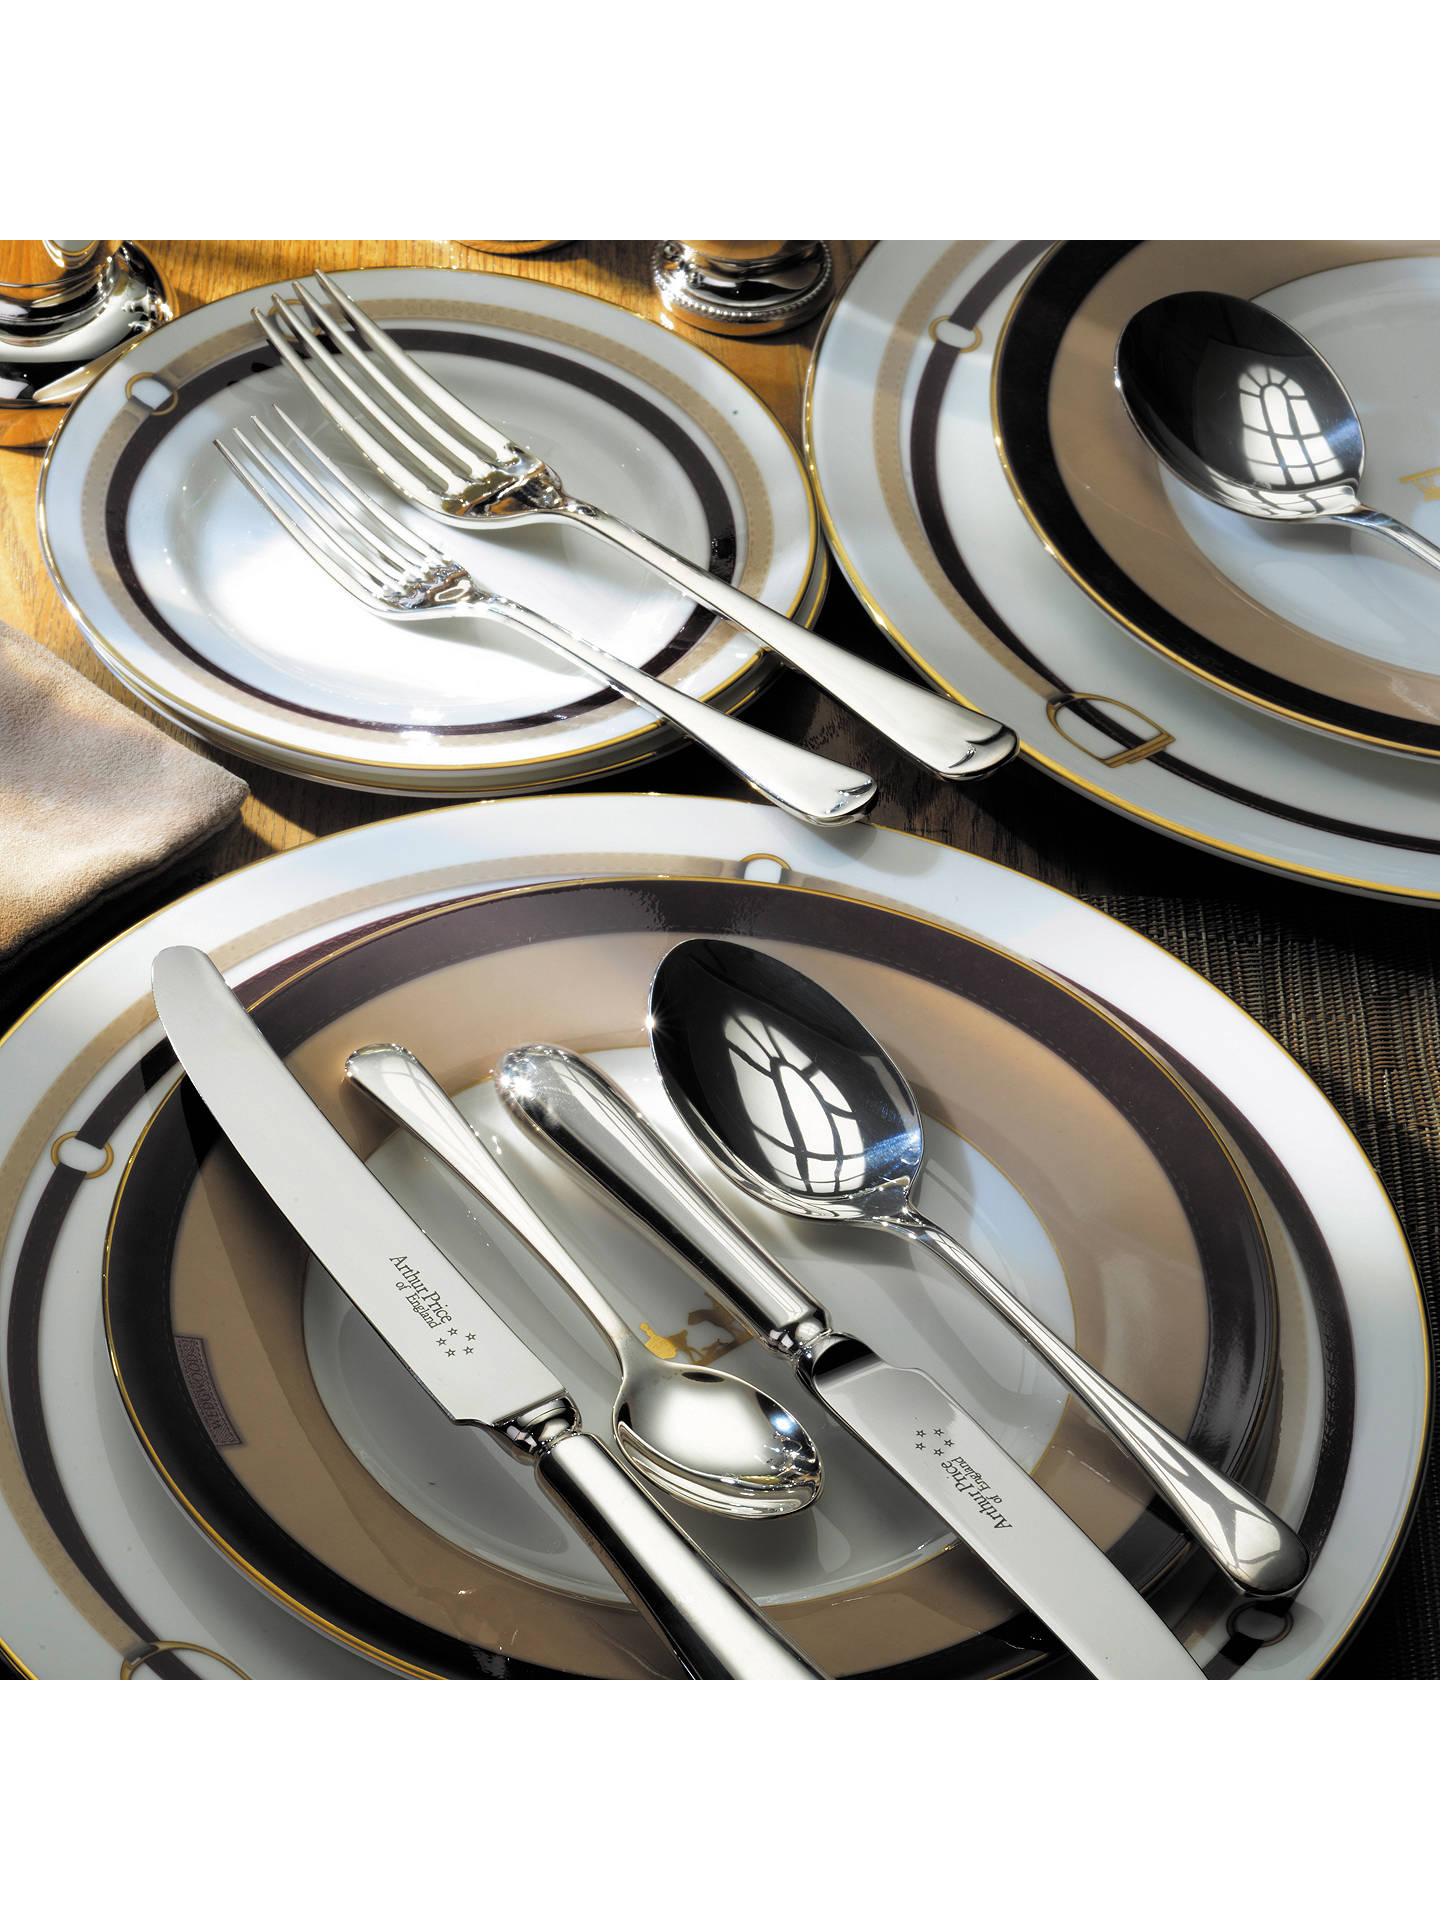 Buy Arthur Price Old English Stainless Steel Cutlery Set, 56 Piece Online at johnlewis.com